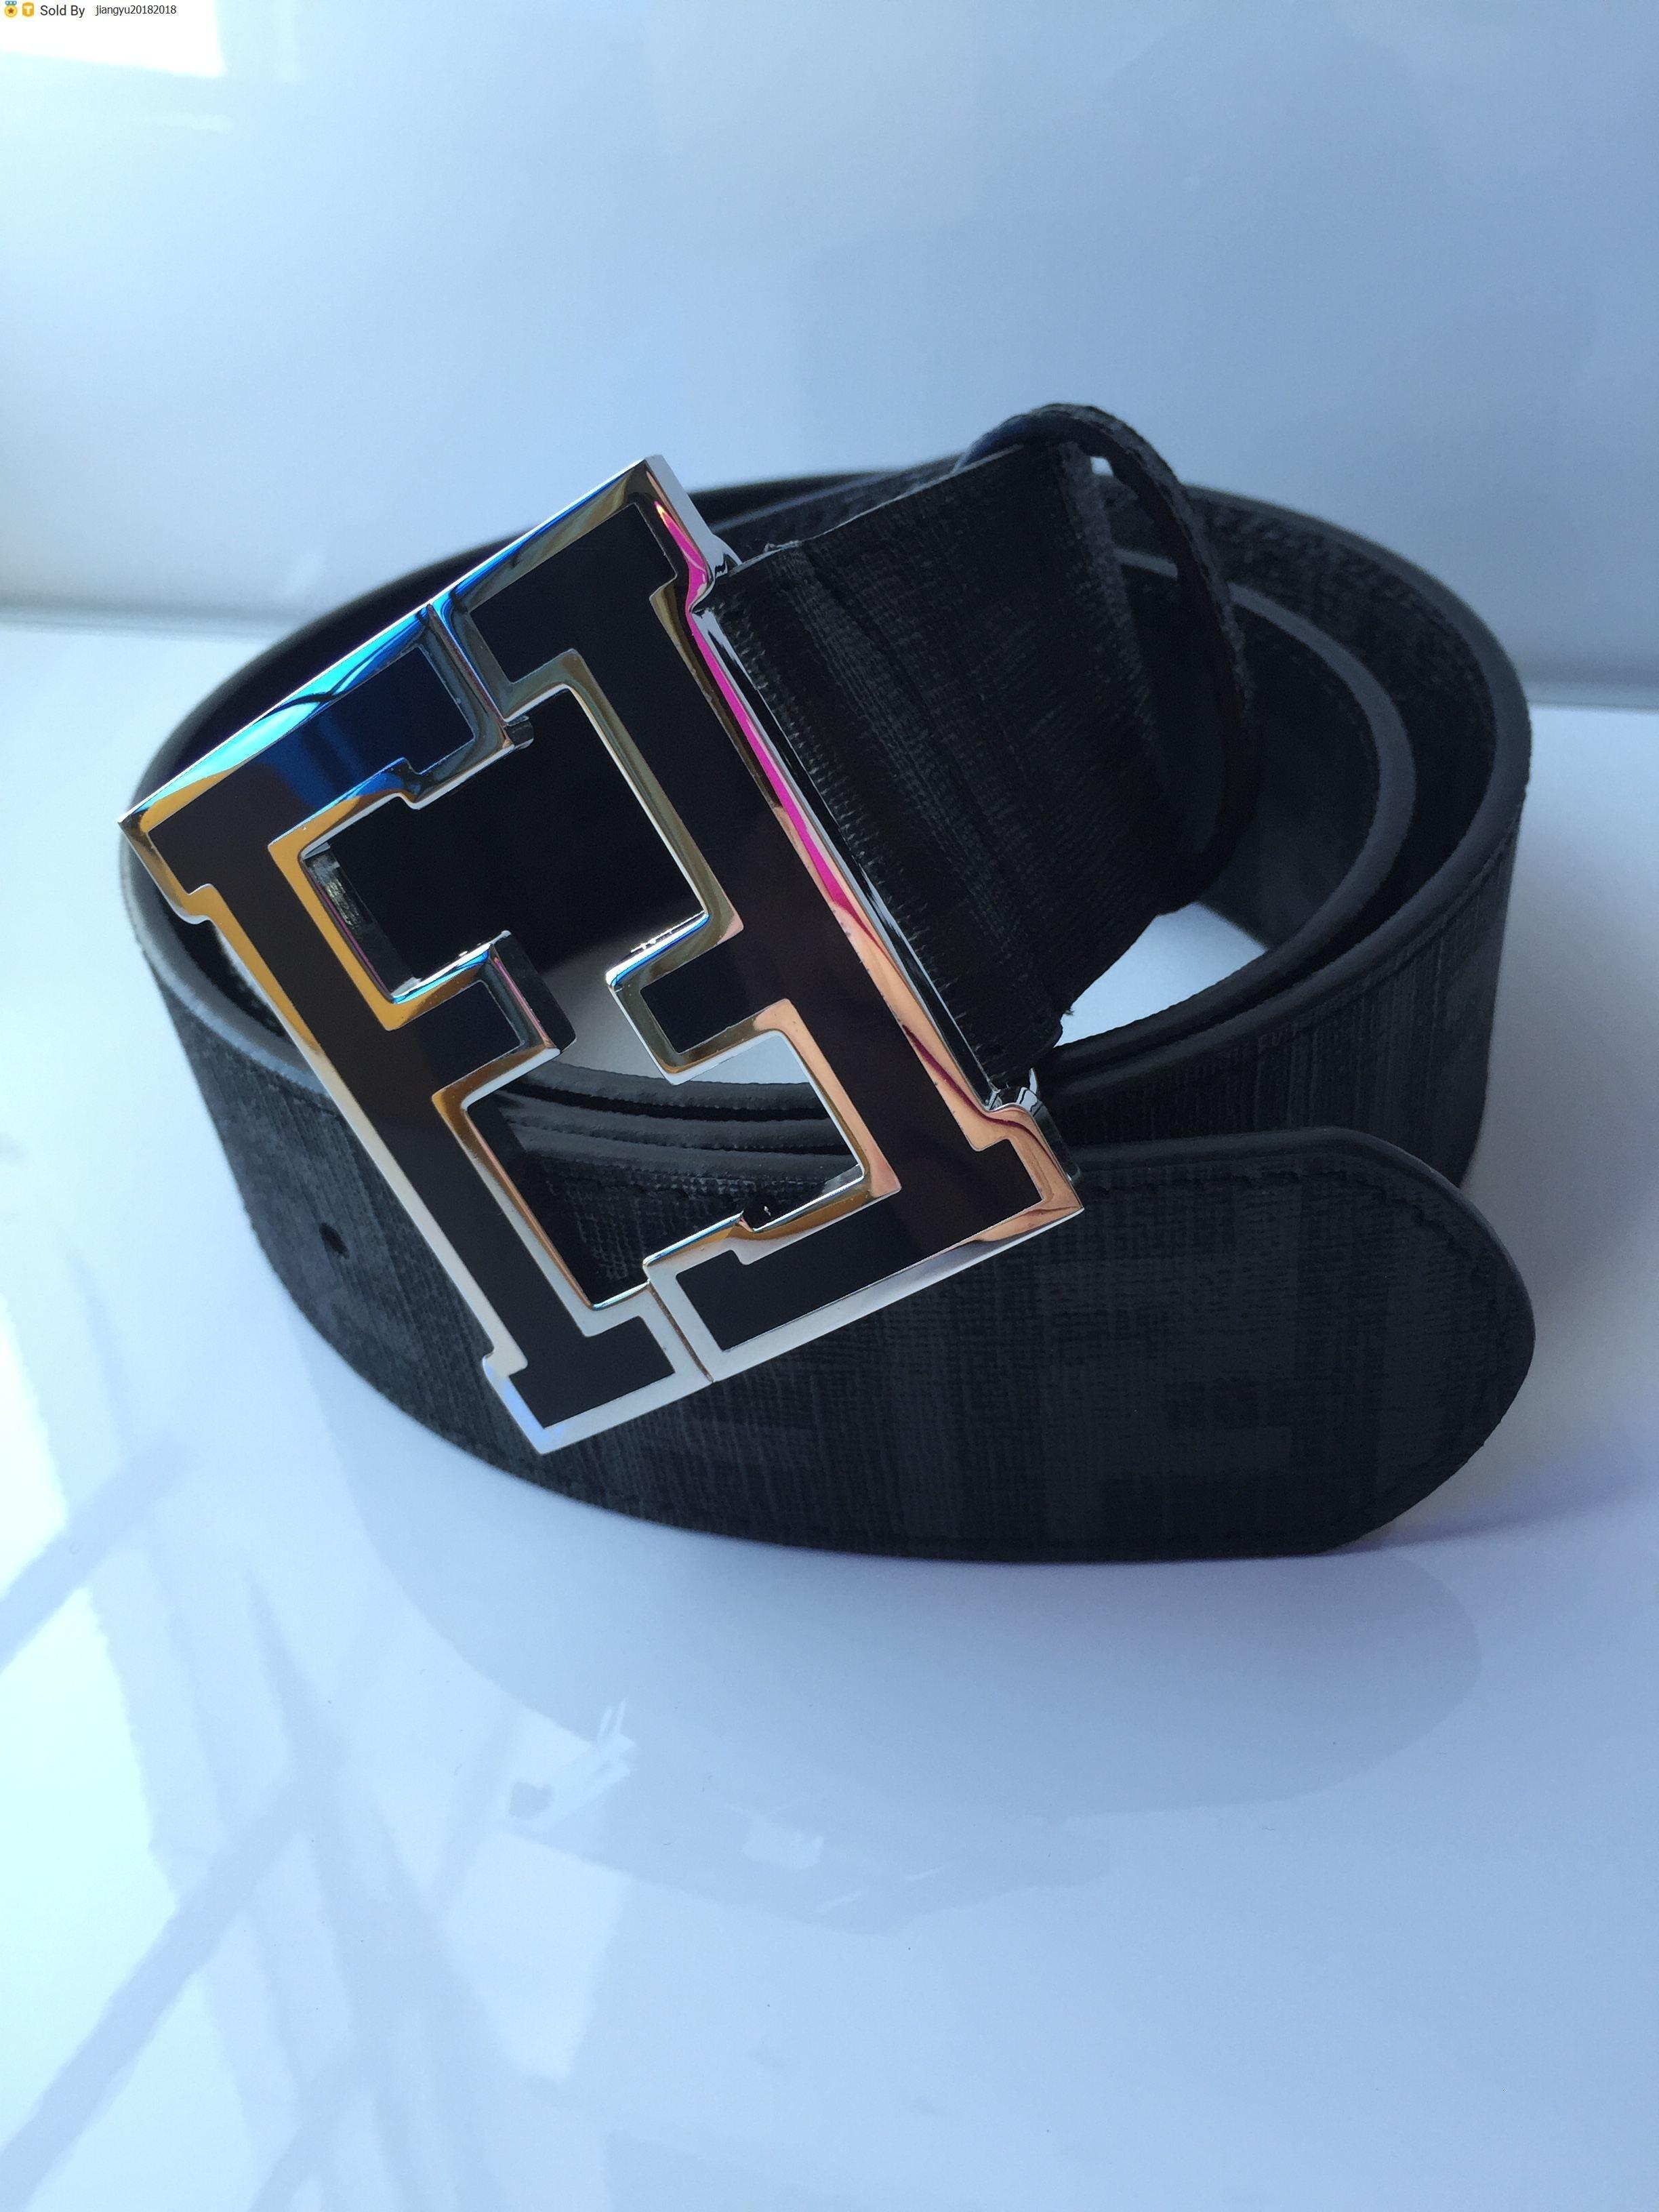 F BELT Real leather includes the serial number box Big buckle Black Reversible Belt White ADJUSTABLE WITH BOX